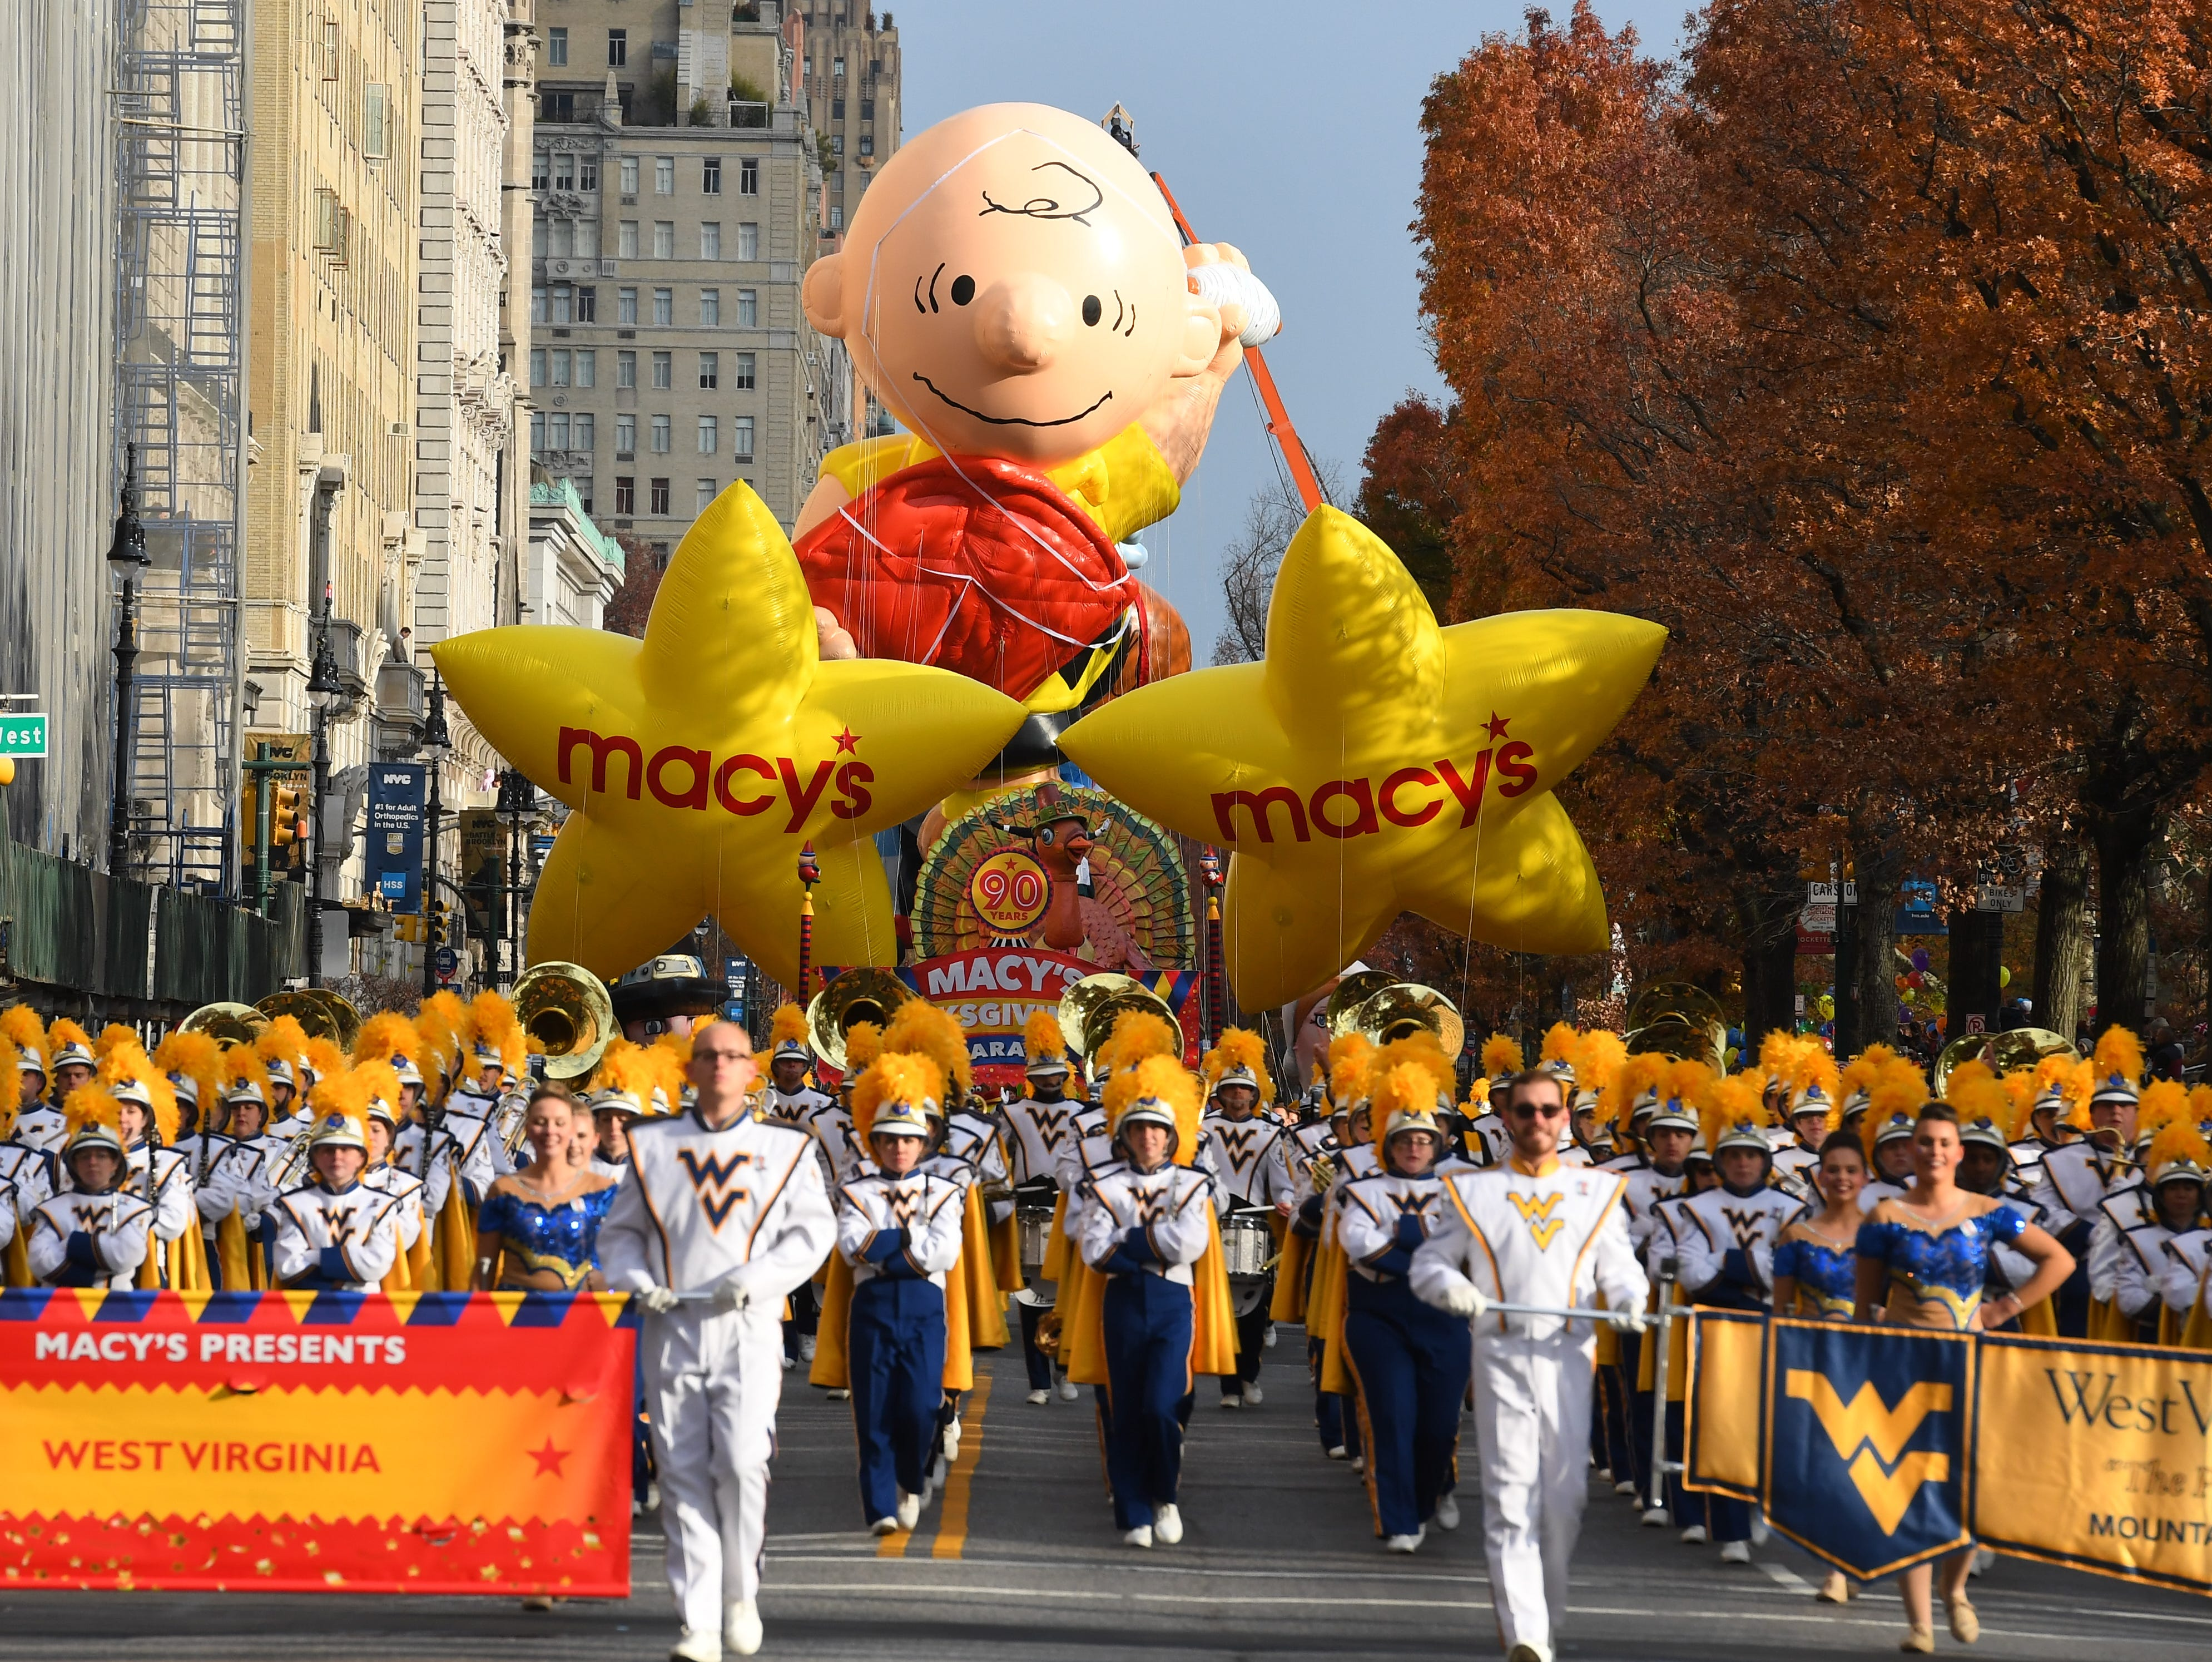 11/24/16 9:10:29 AM -- NY , NY, U.S.A  --The turkey leads off the parade at the Macy's Thanksgiving Day Parade on Central Park West in New York City.